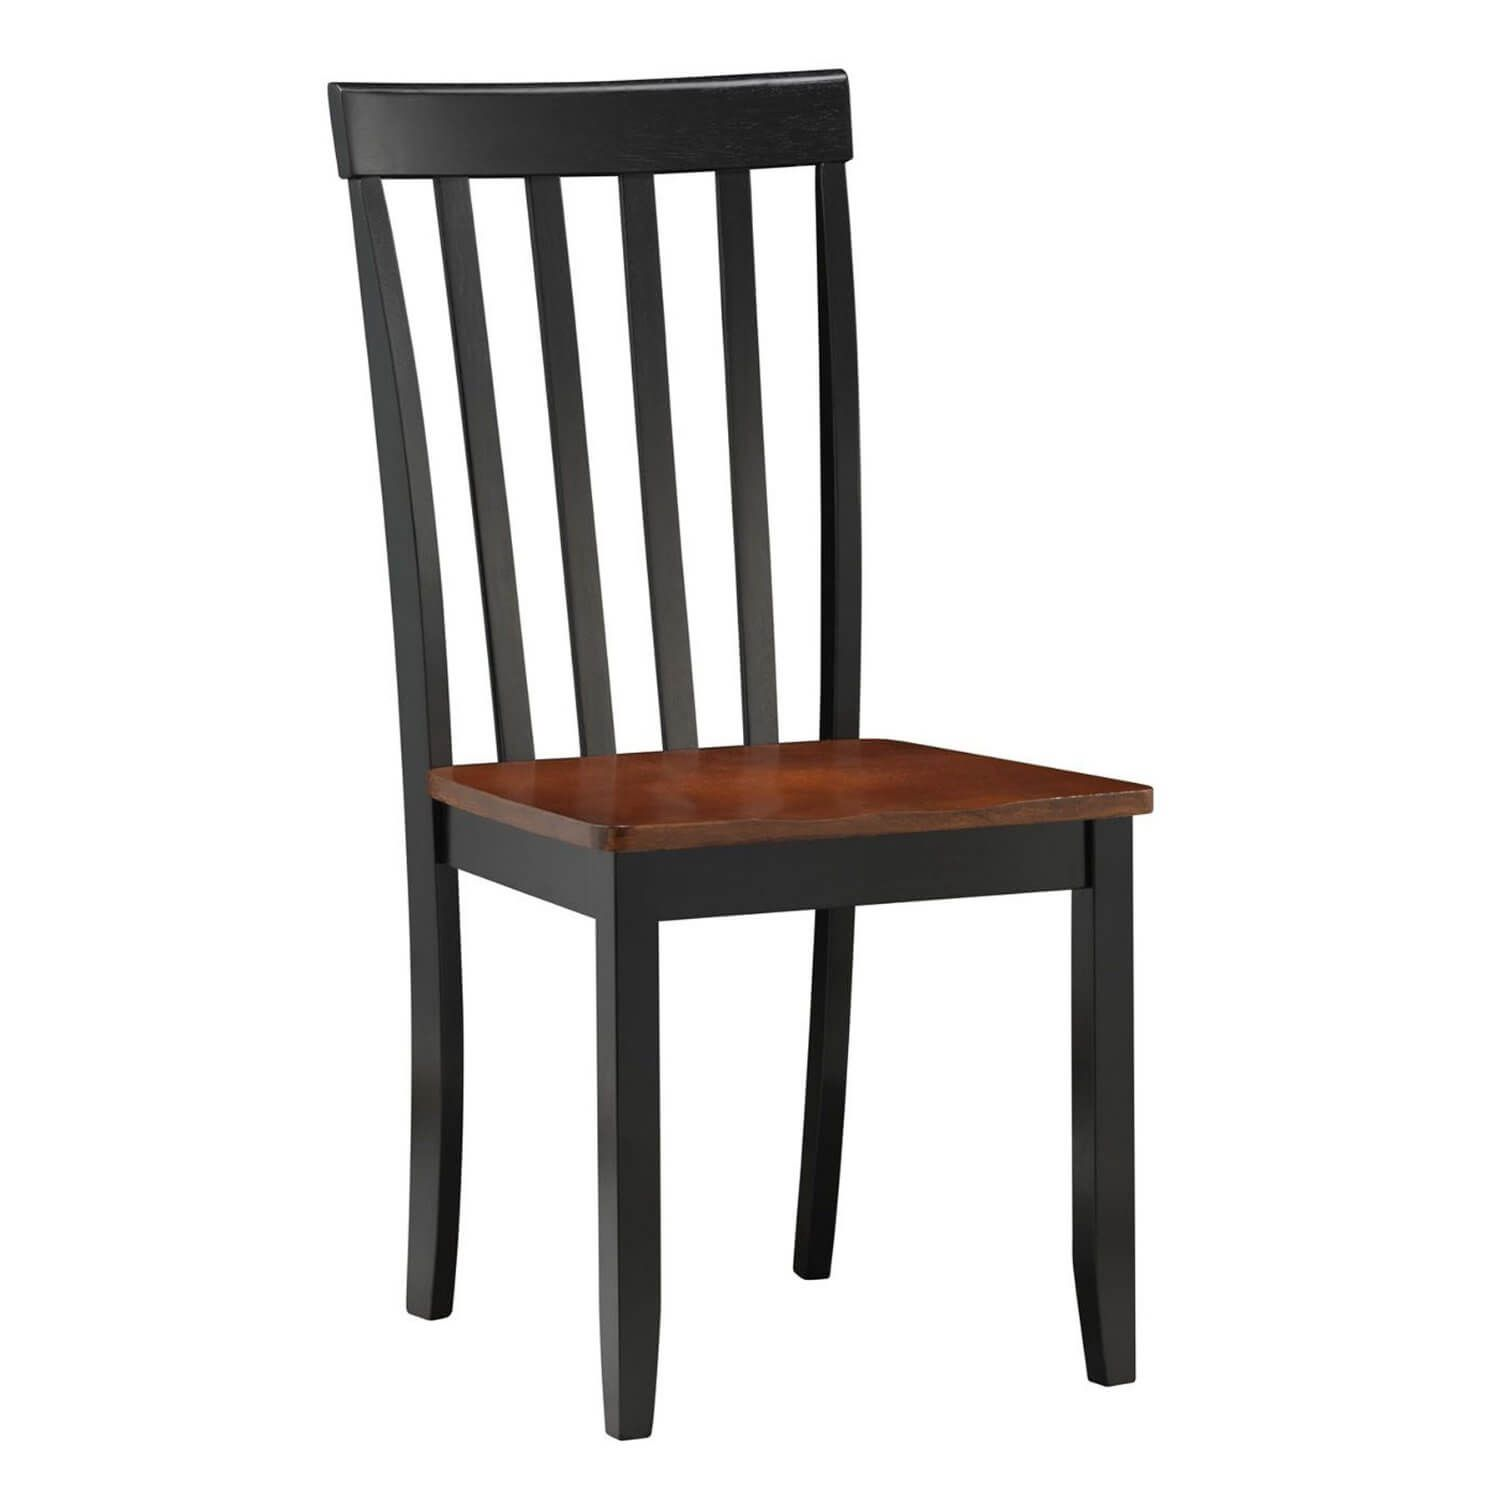 19 Types Of Dining Room Chairs Crucial Buying Guide Wood